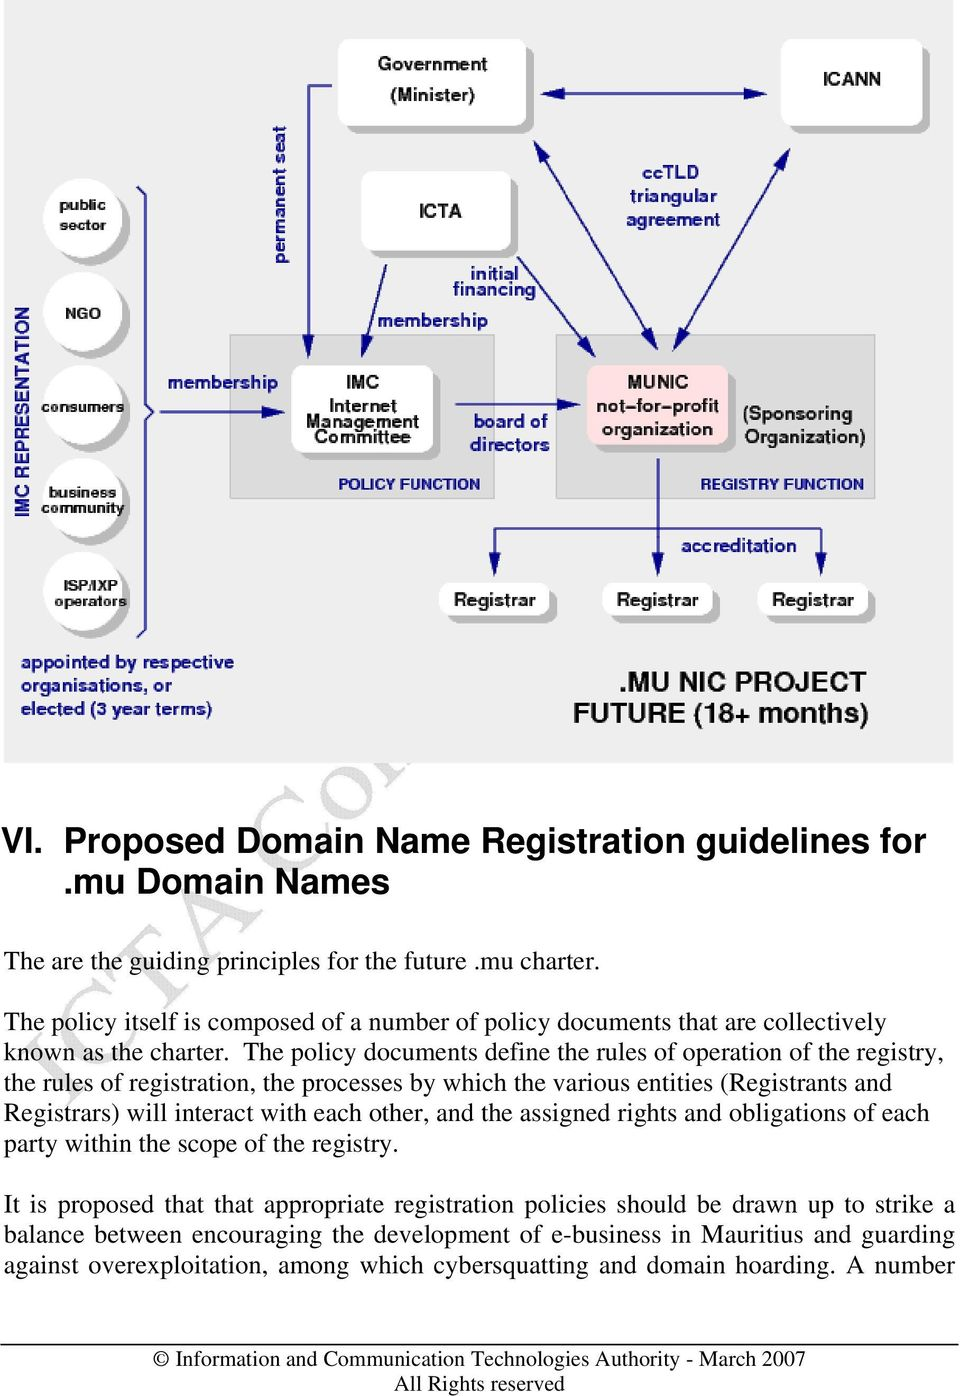 The policy documents define the rules of operation of the registry, the rules of registration, the processes by which the various entities (Registrants and Registrars) will interact with each